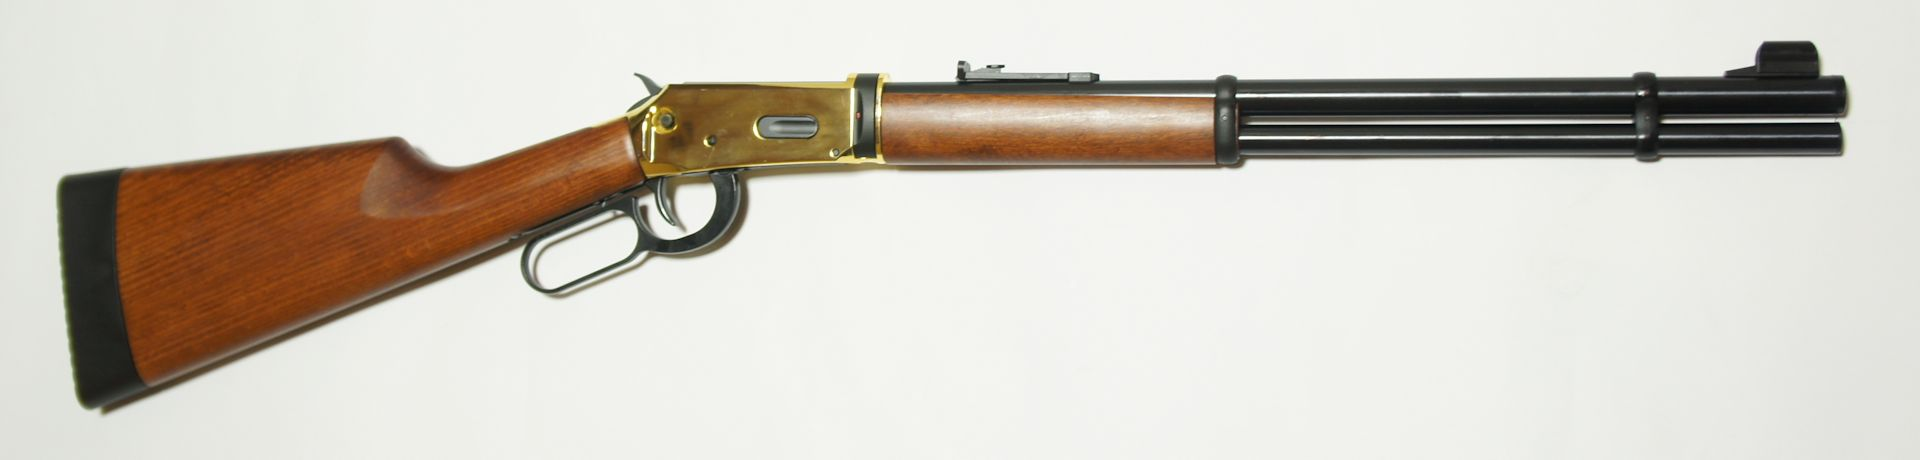 Walther Lever Action Wells fargo